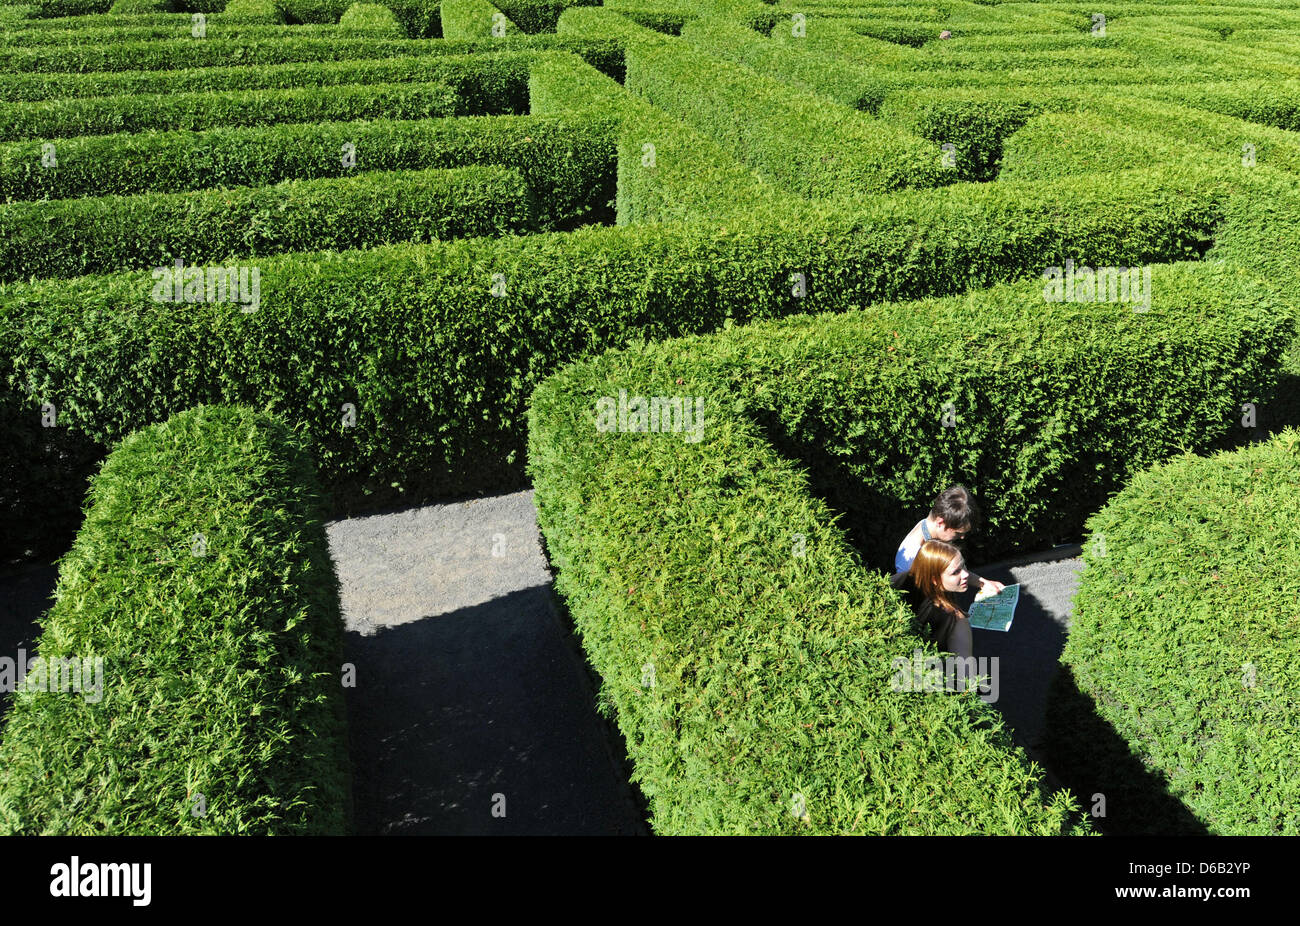 Tourists search for the correct path from the 30,720 possibilities in the hedge maze in Kleinwelka, Germany, 15August - Stock Image